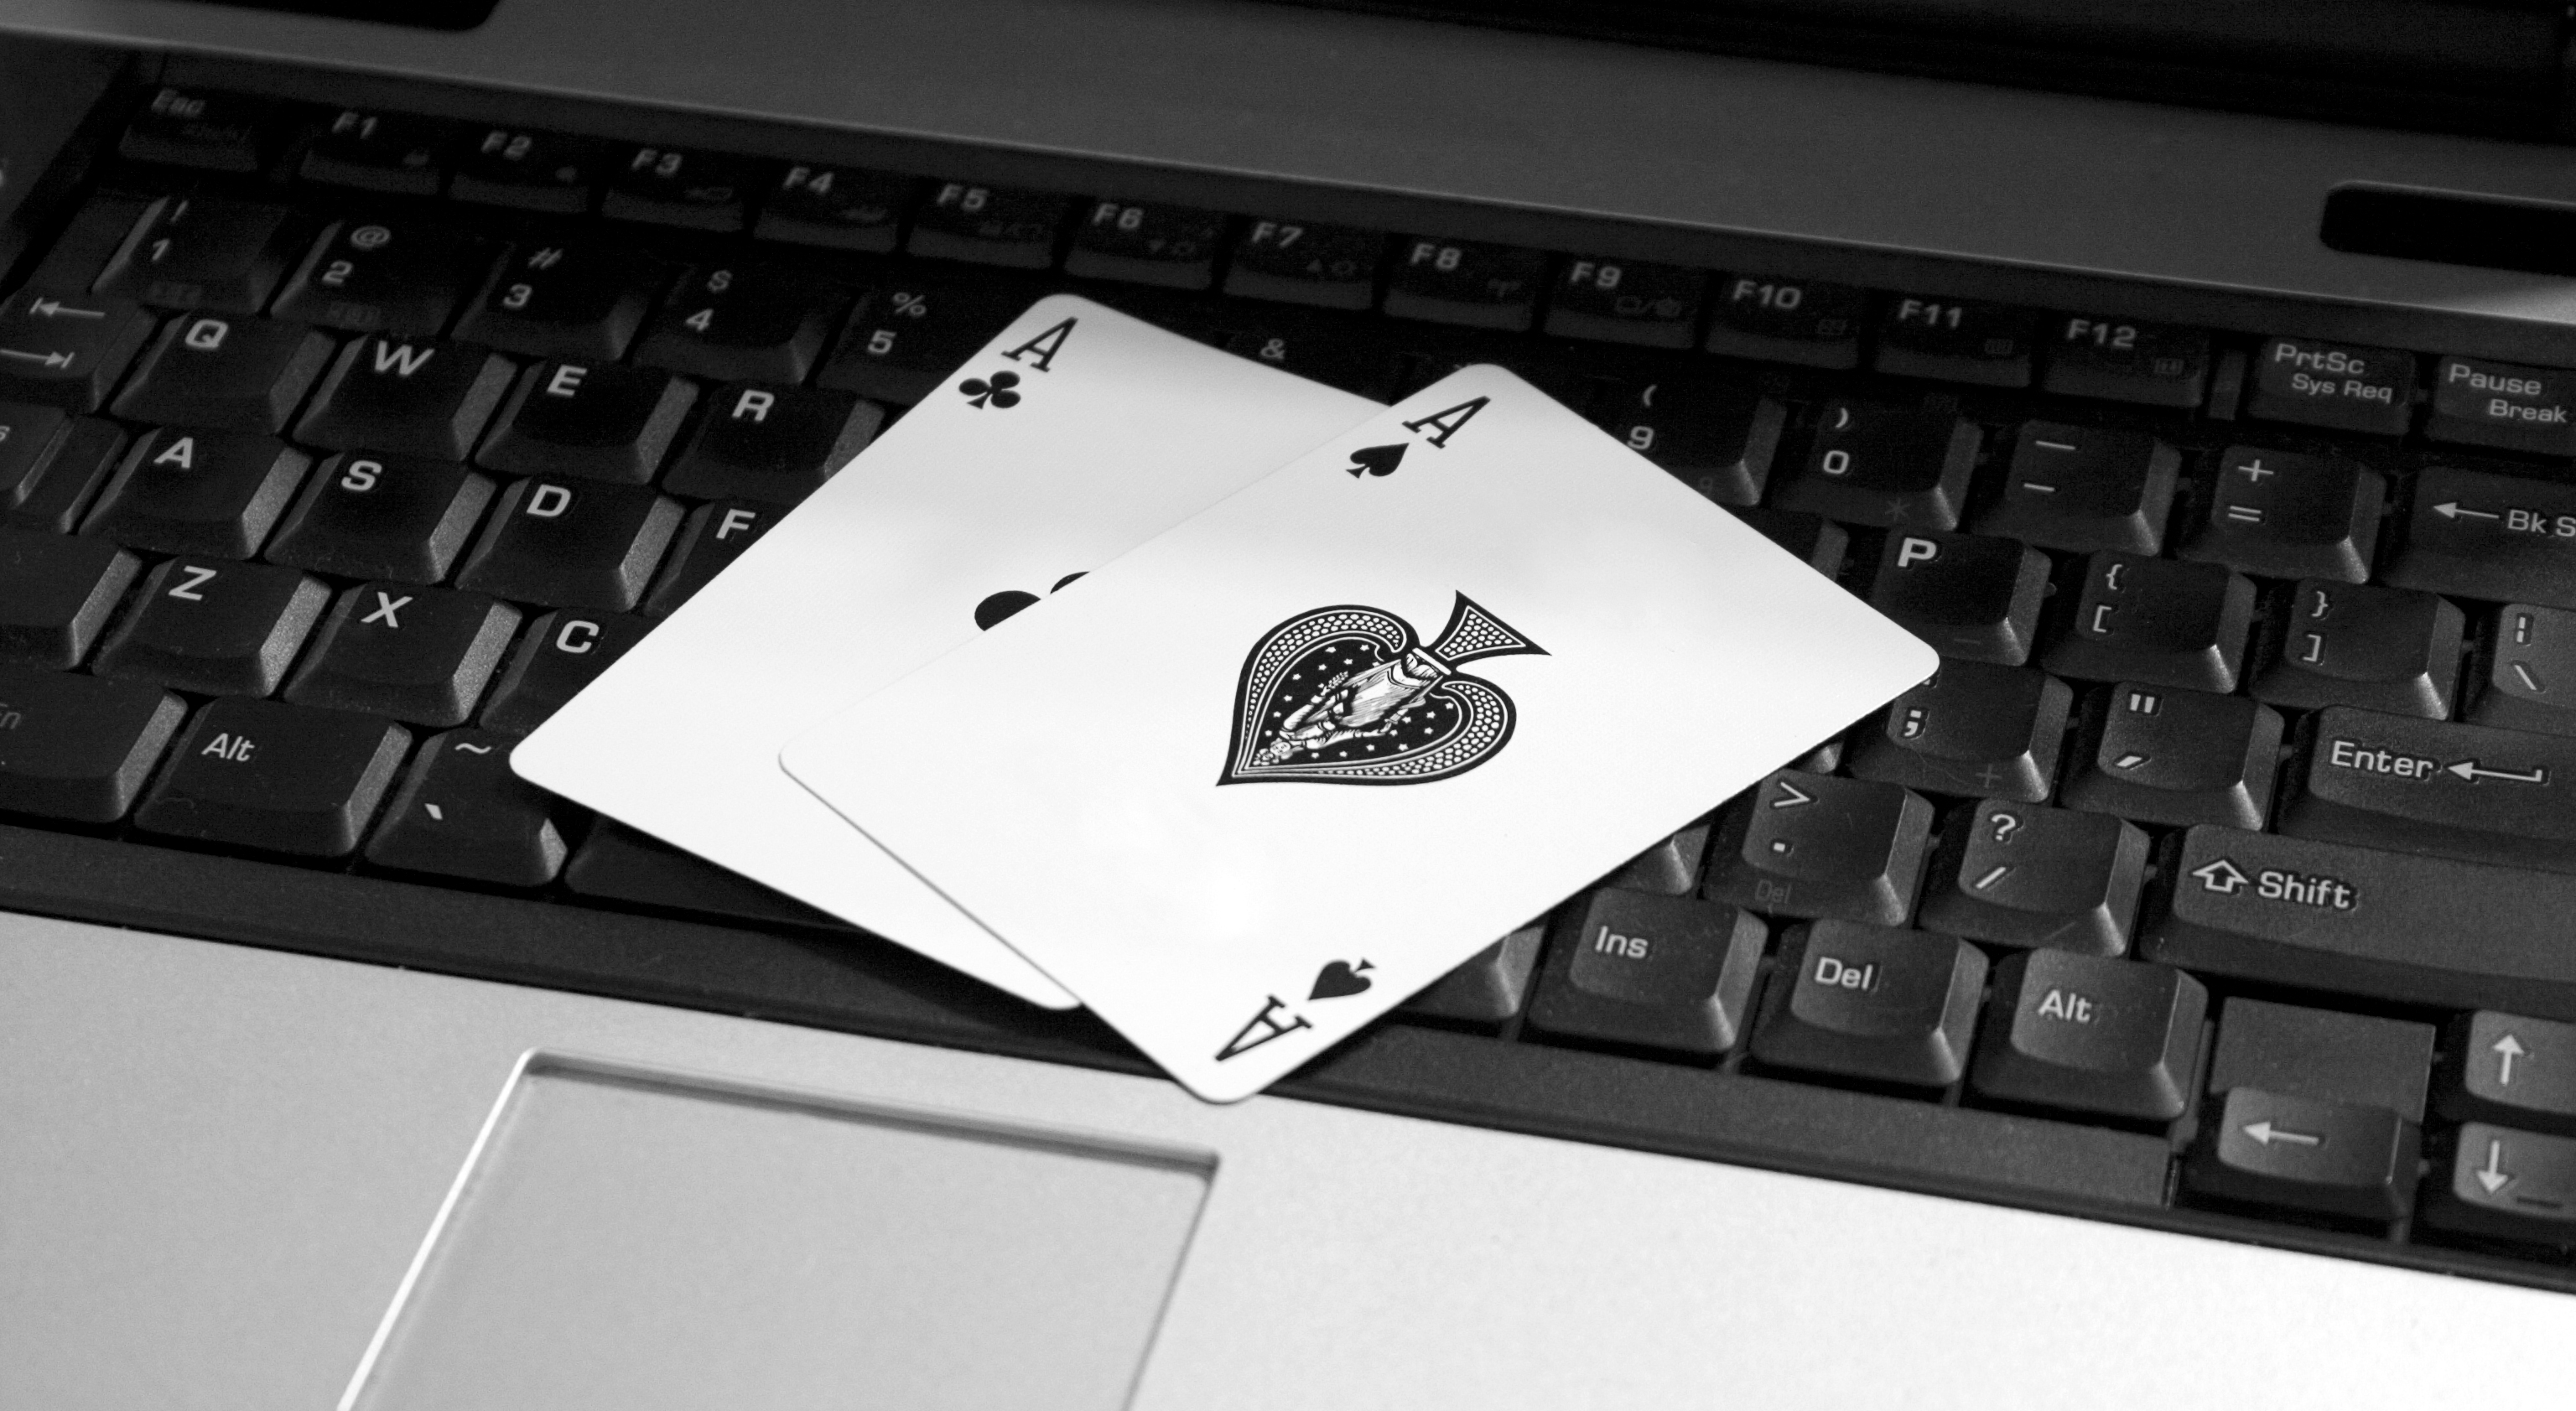 online casino deutschland legal start online casino